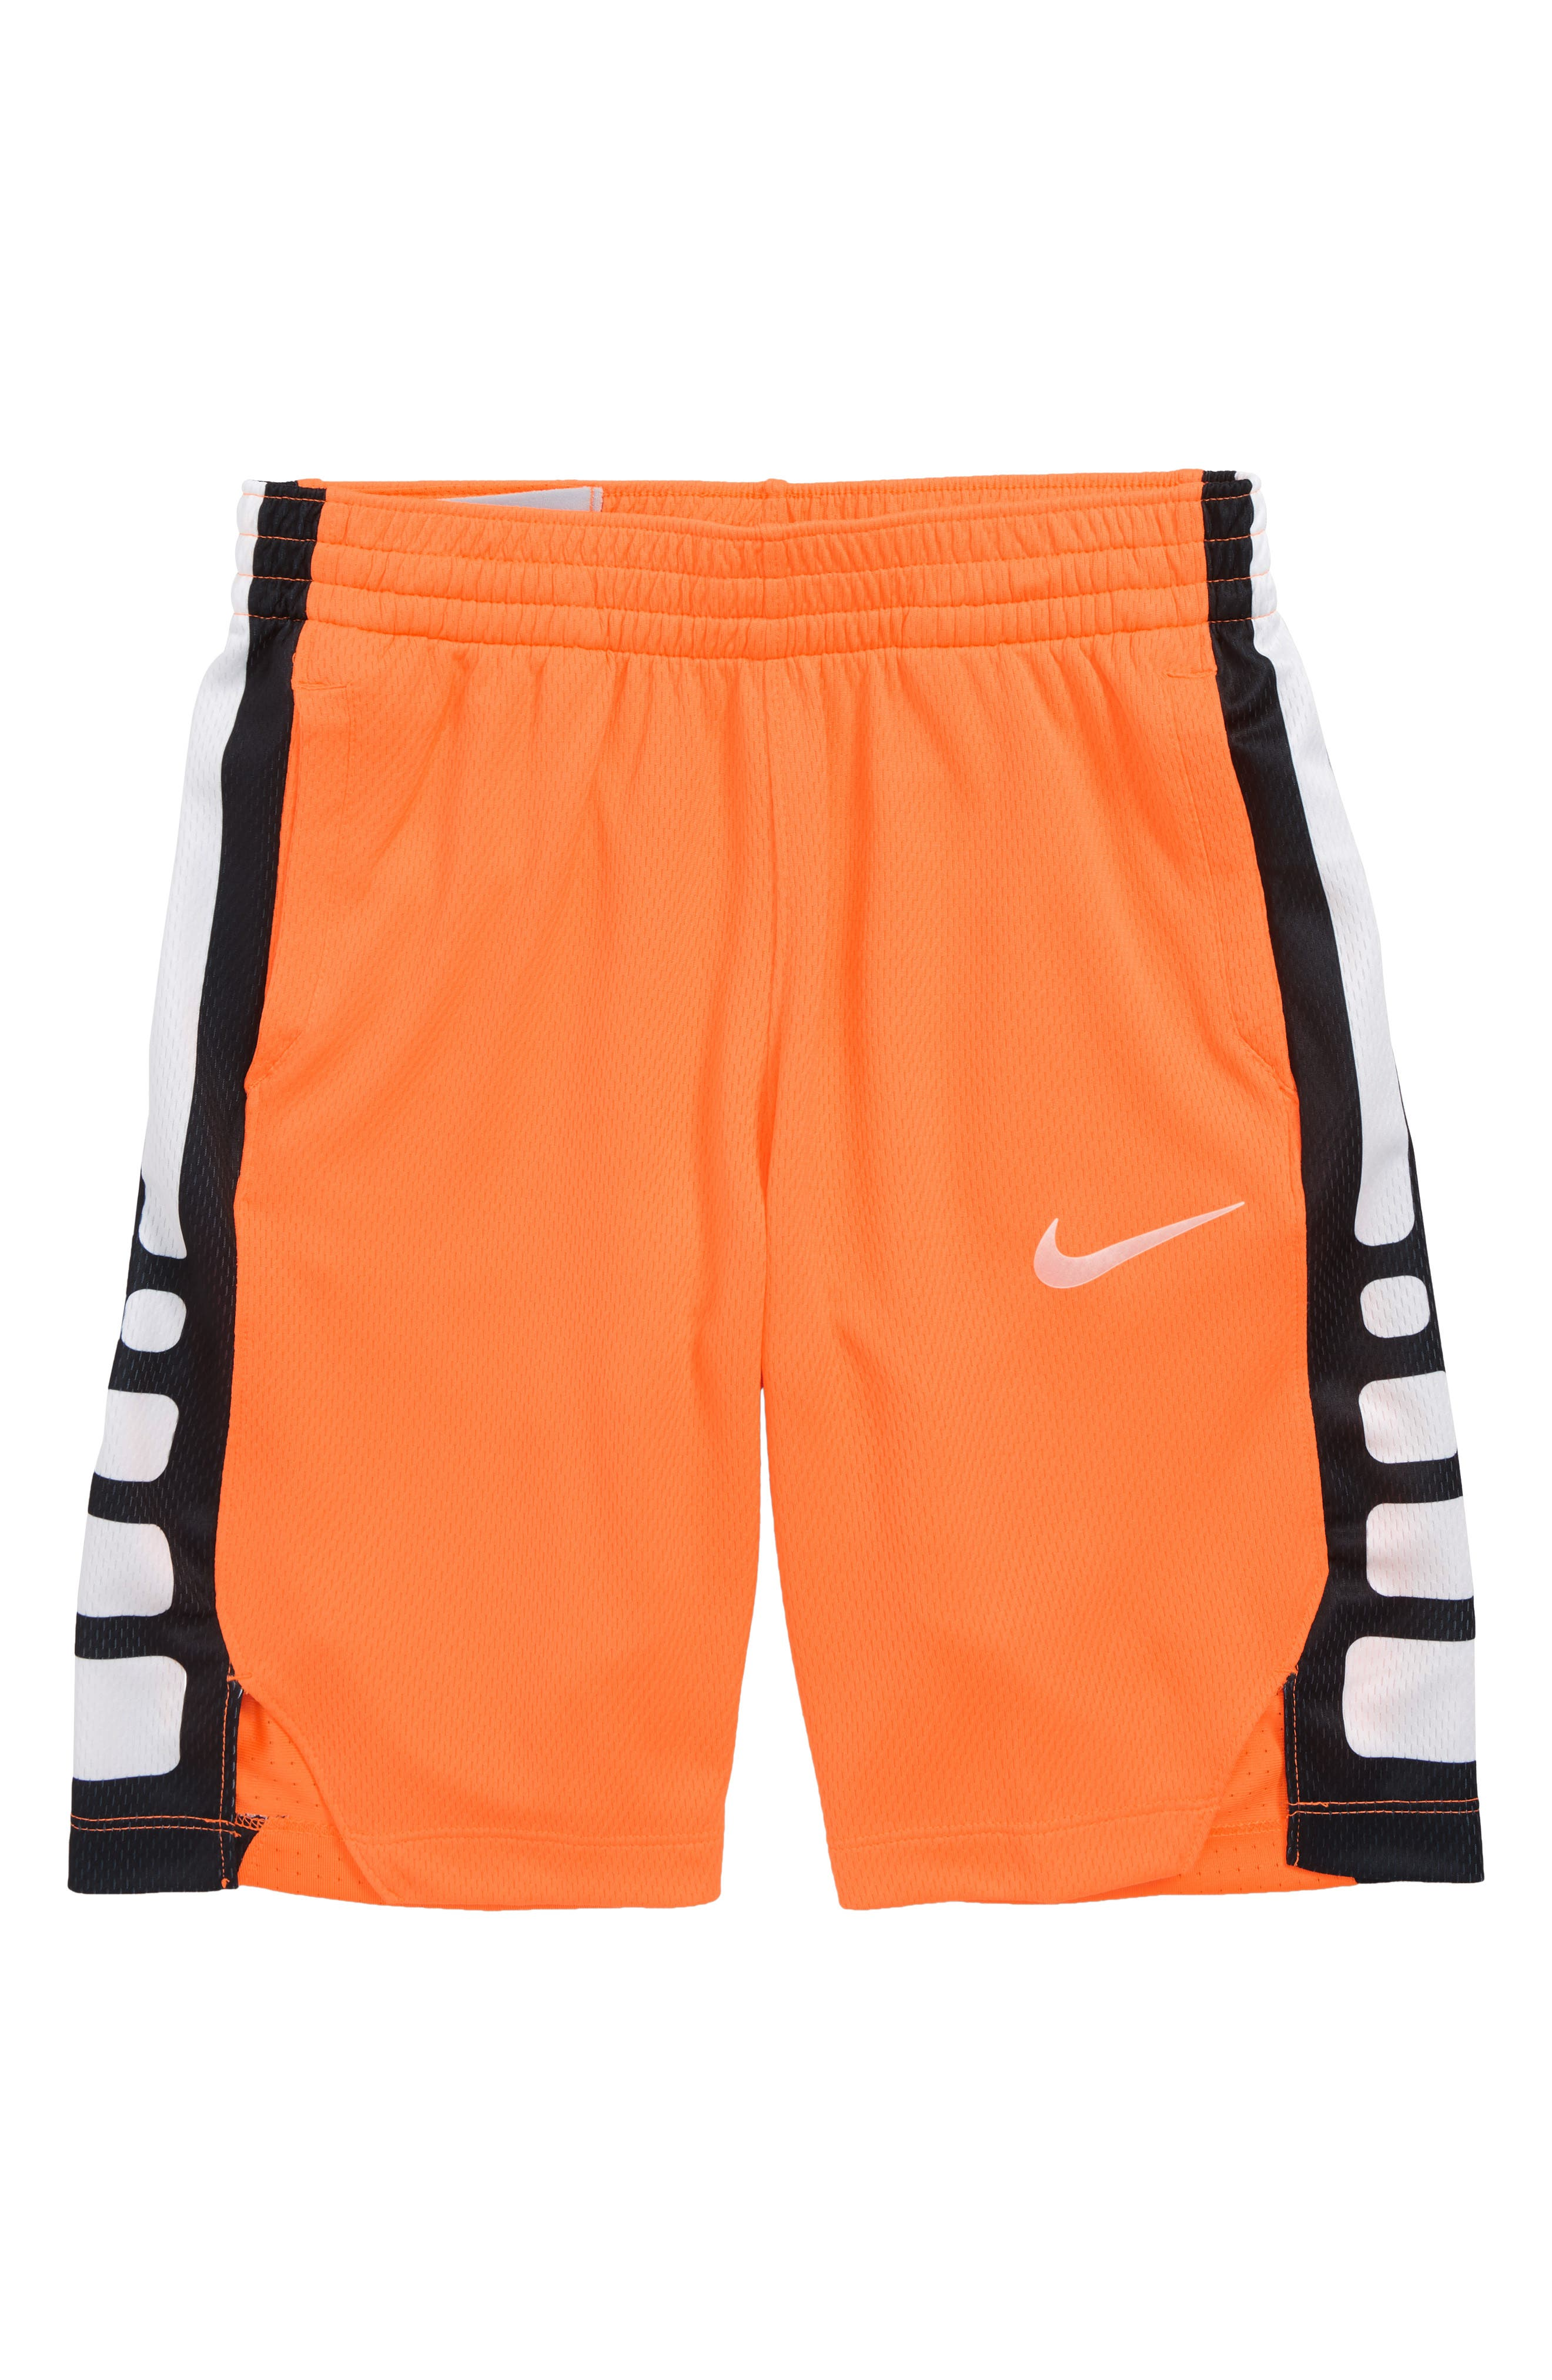 Dry Elite Basketball Shorts,                             Main thumbnail 24, color,